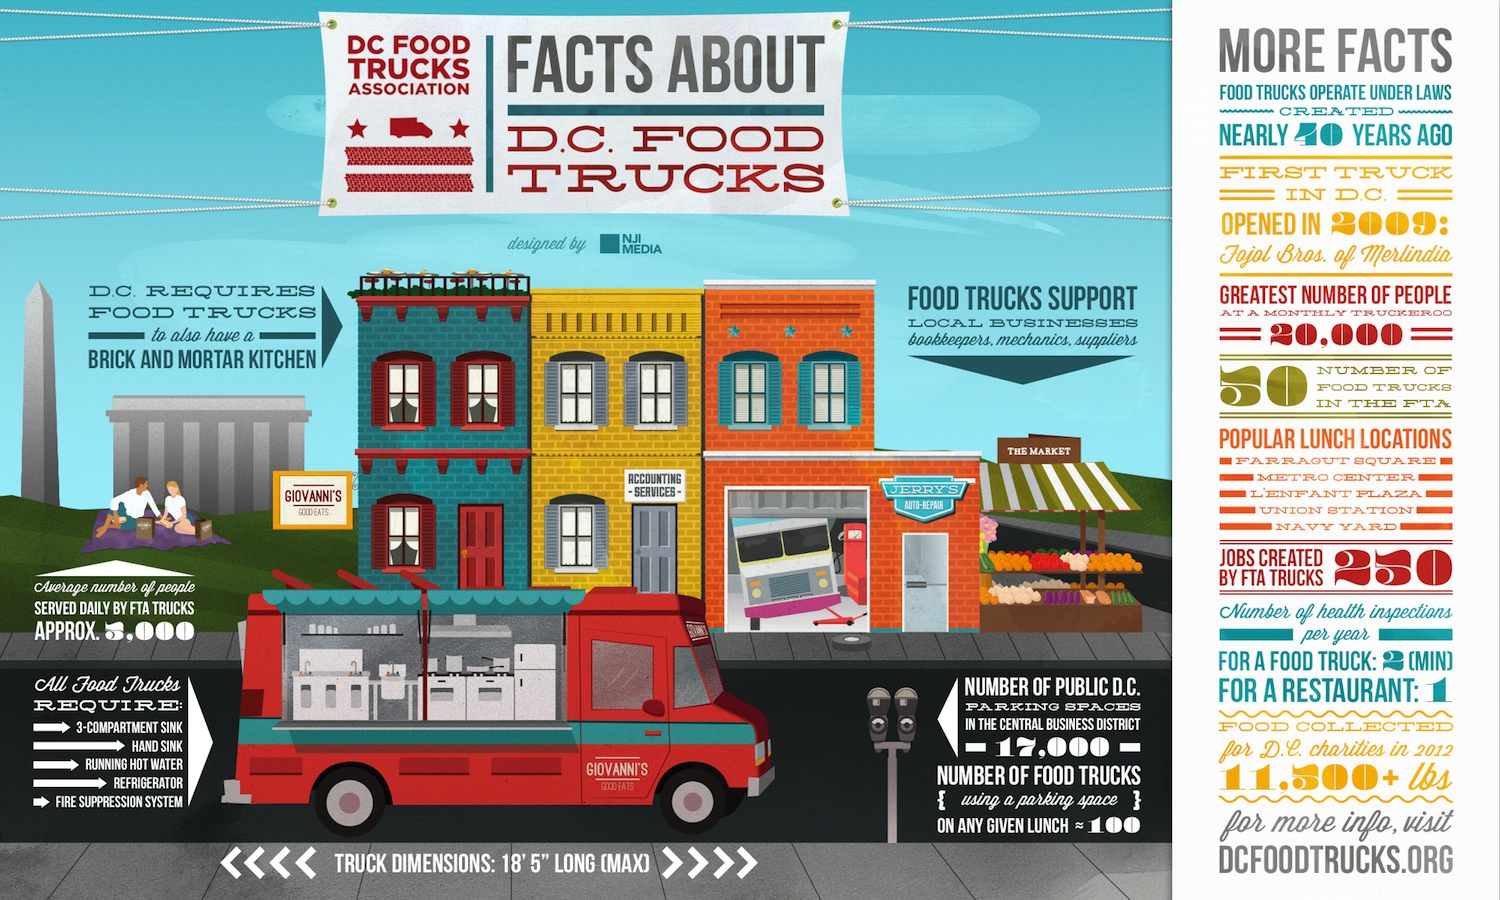 Food Trucks, which are big business in DC, are heading to a winery near you (Infographic Courtesy:  NJI Media)